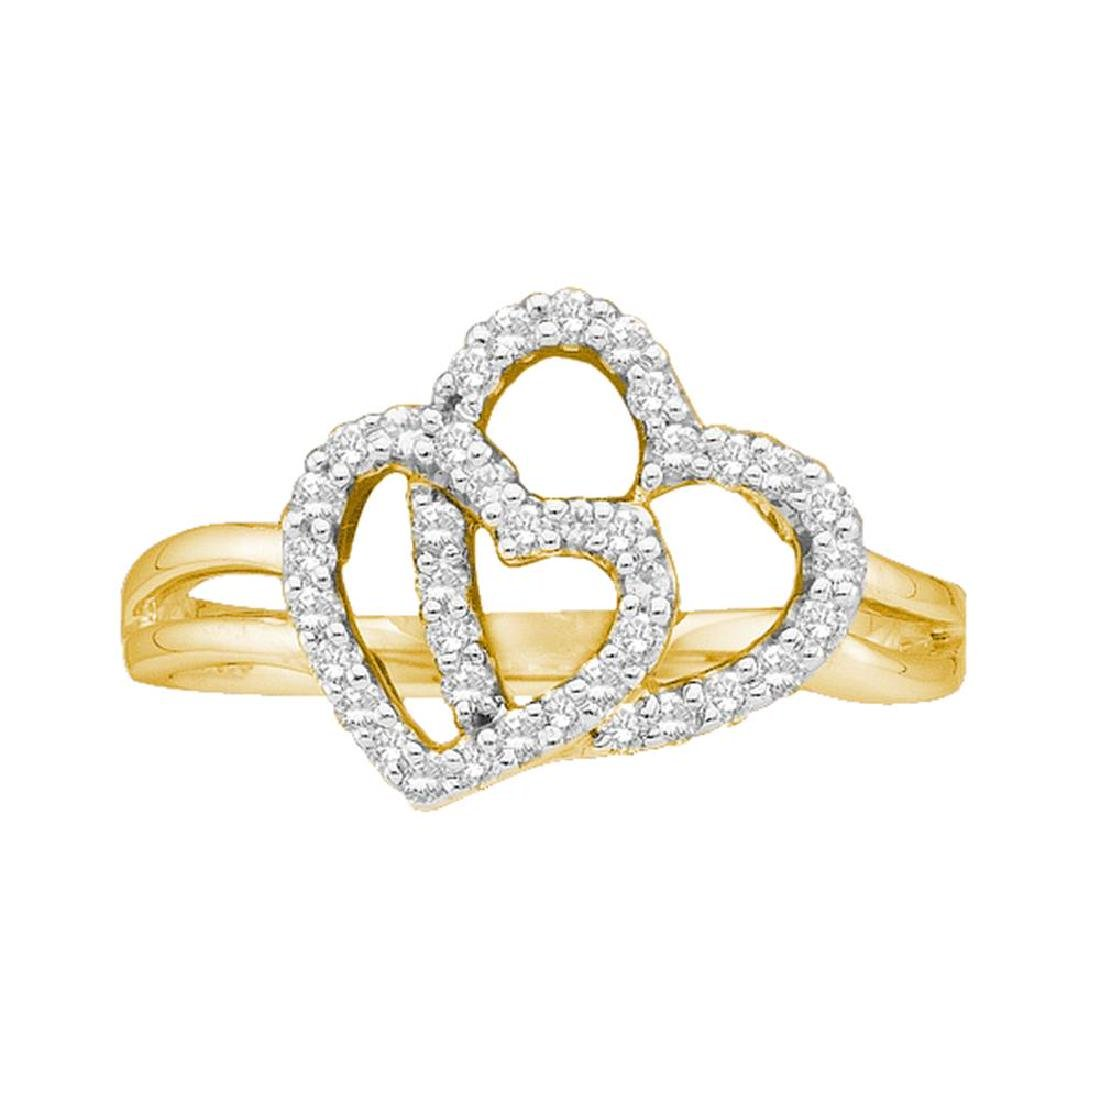 0.27 CTW Diamond Double Heart Ring 14KT Yellow Gold -